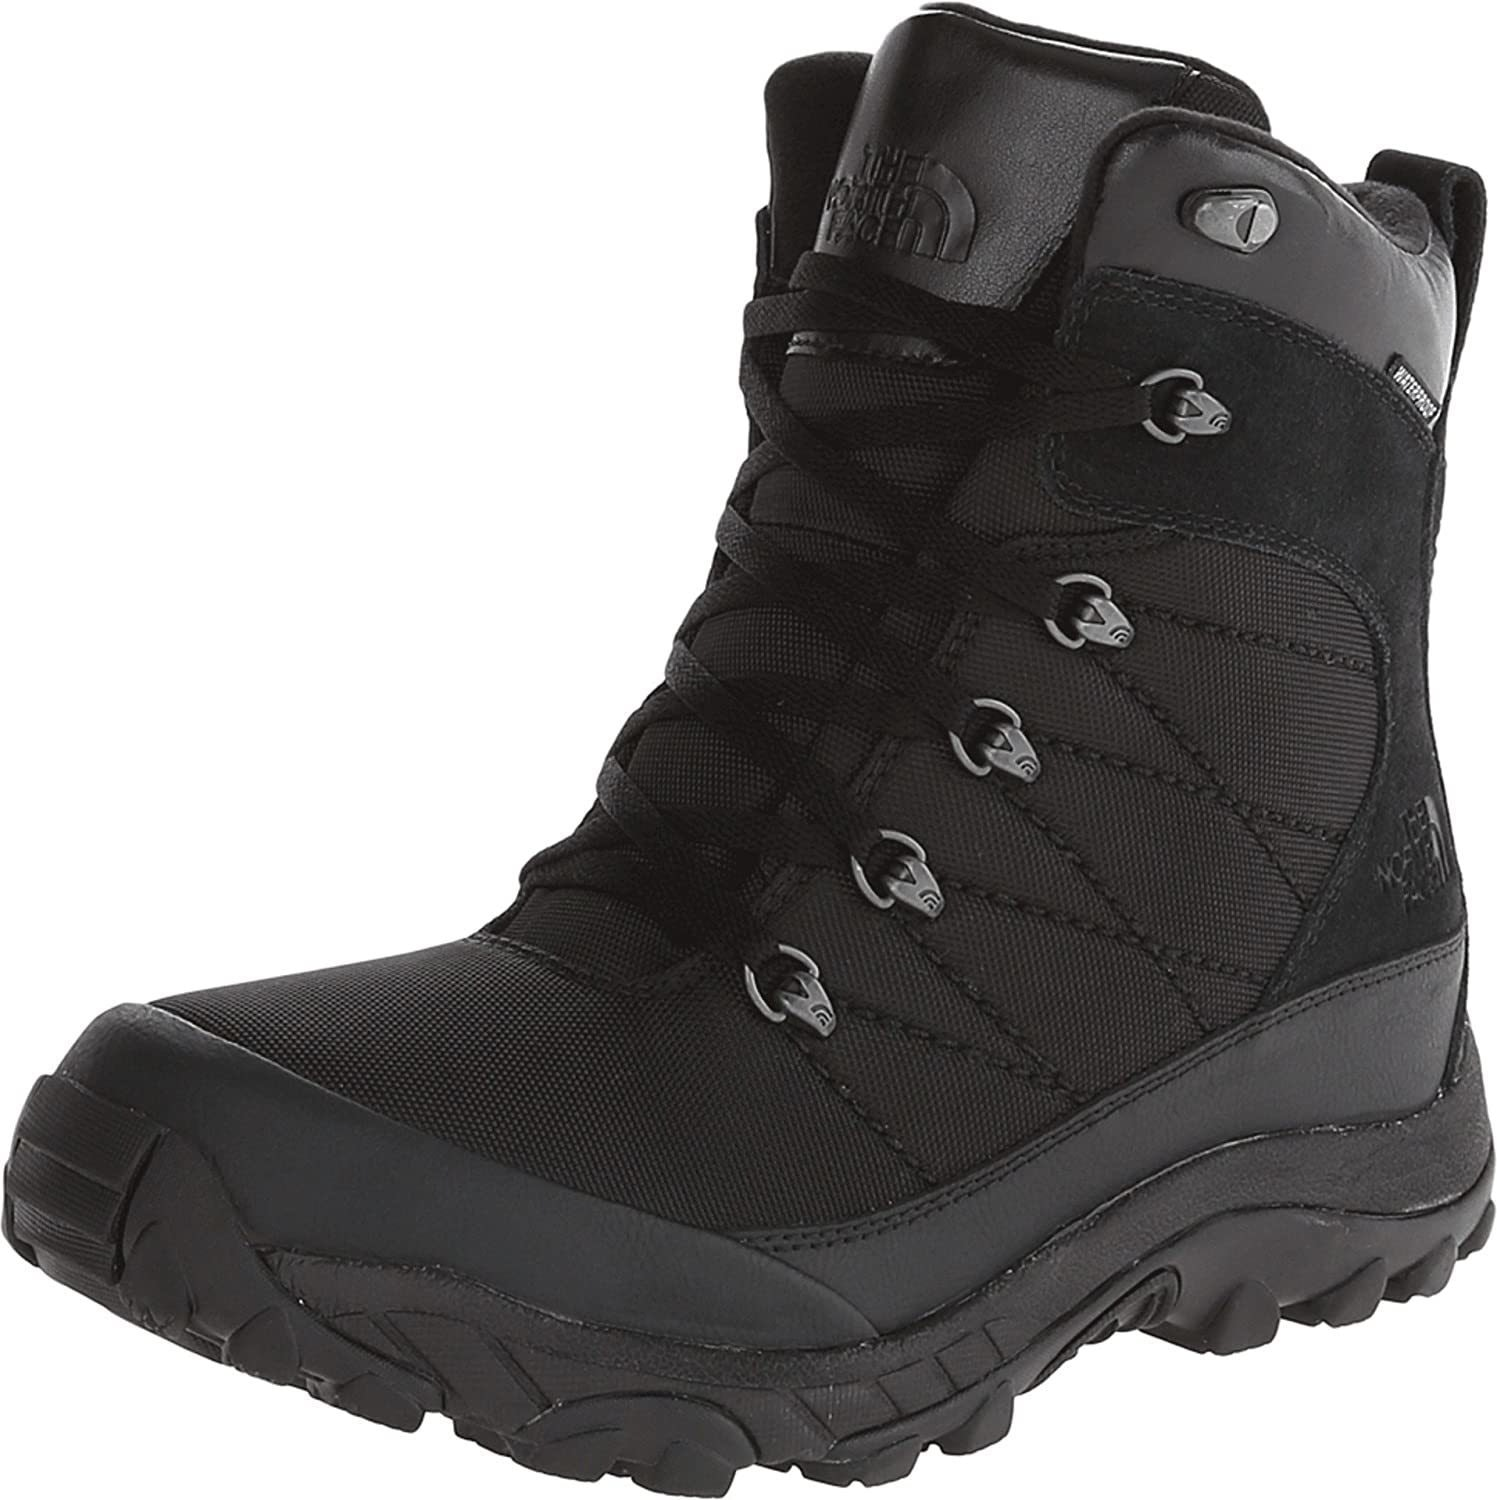 North Face Chilkat Nylon Boots